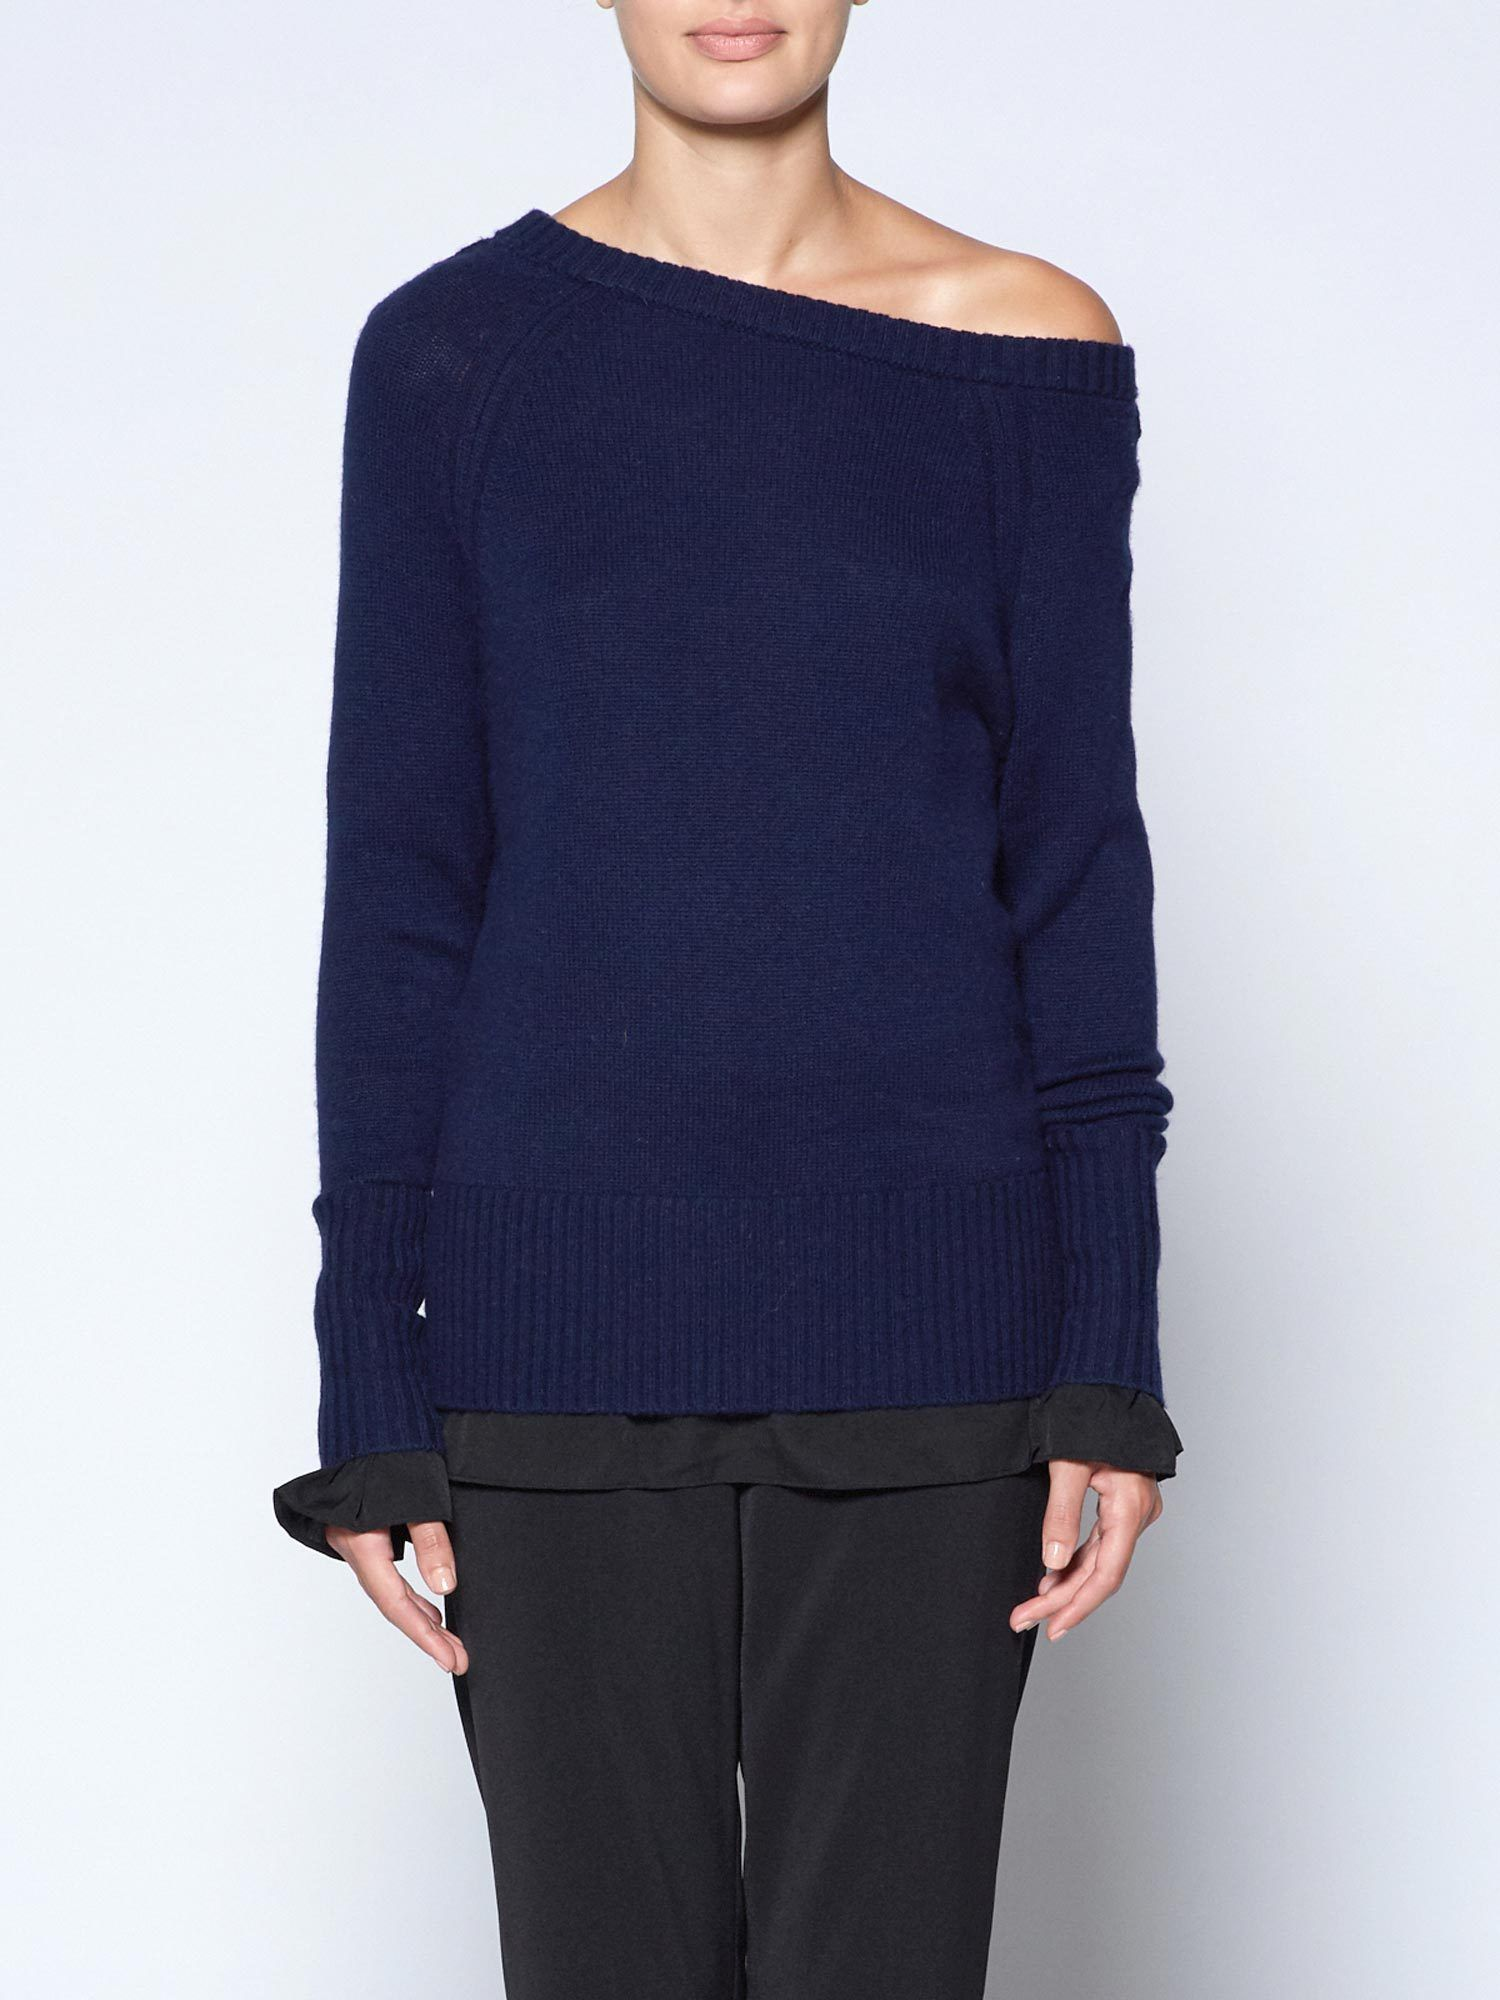 The Flores Layered Off-shoulder